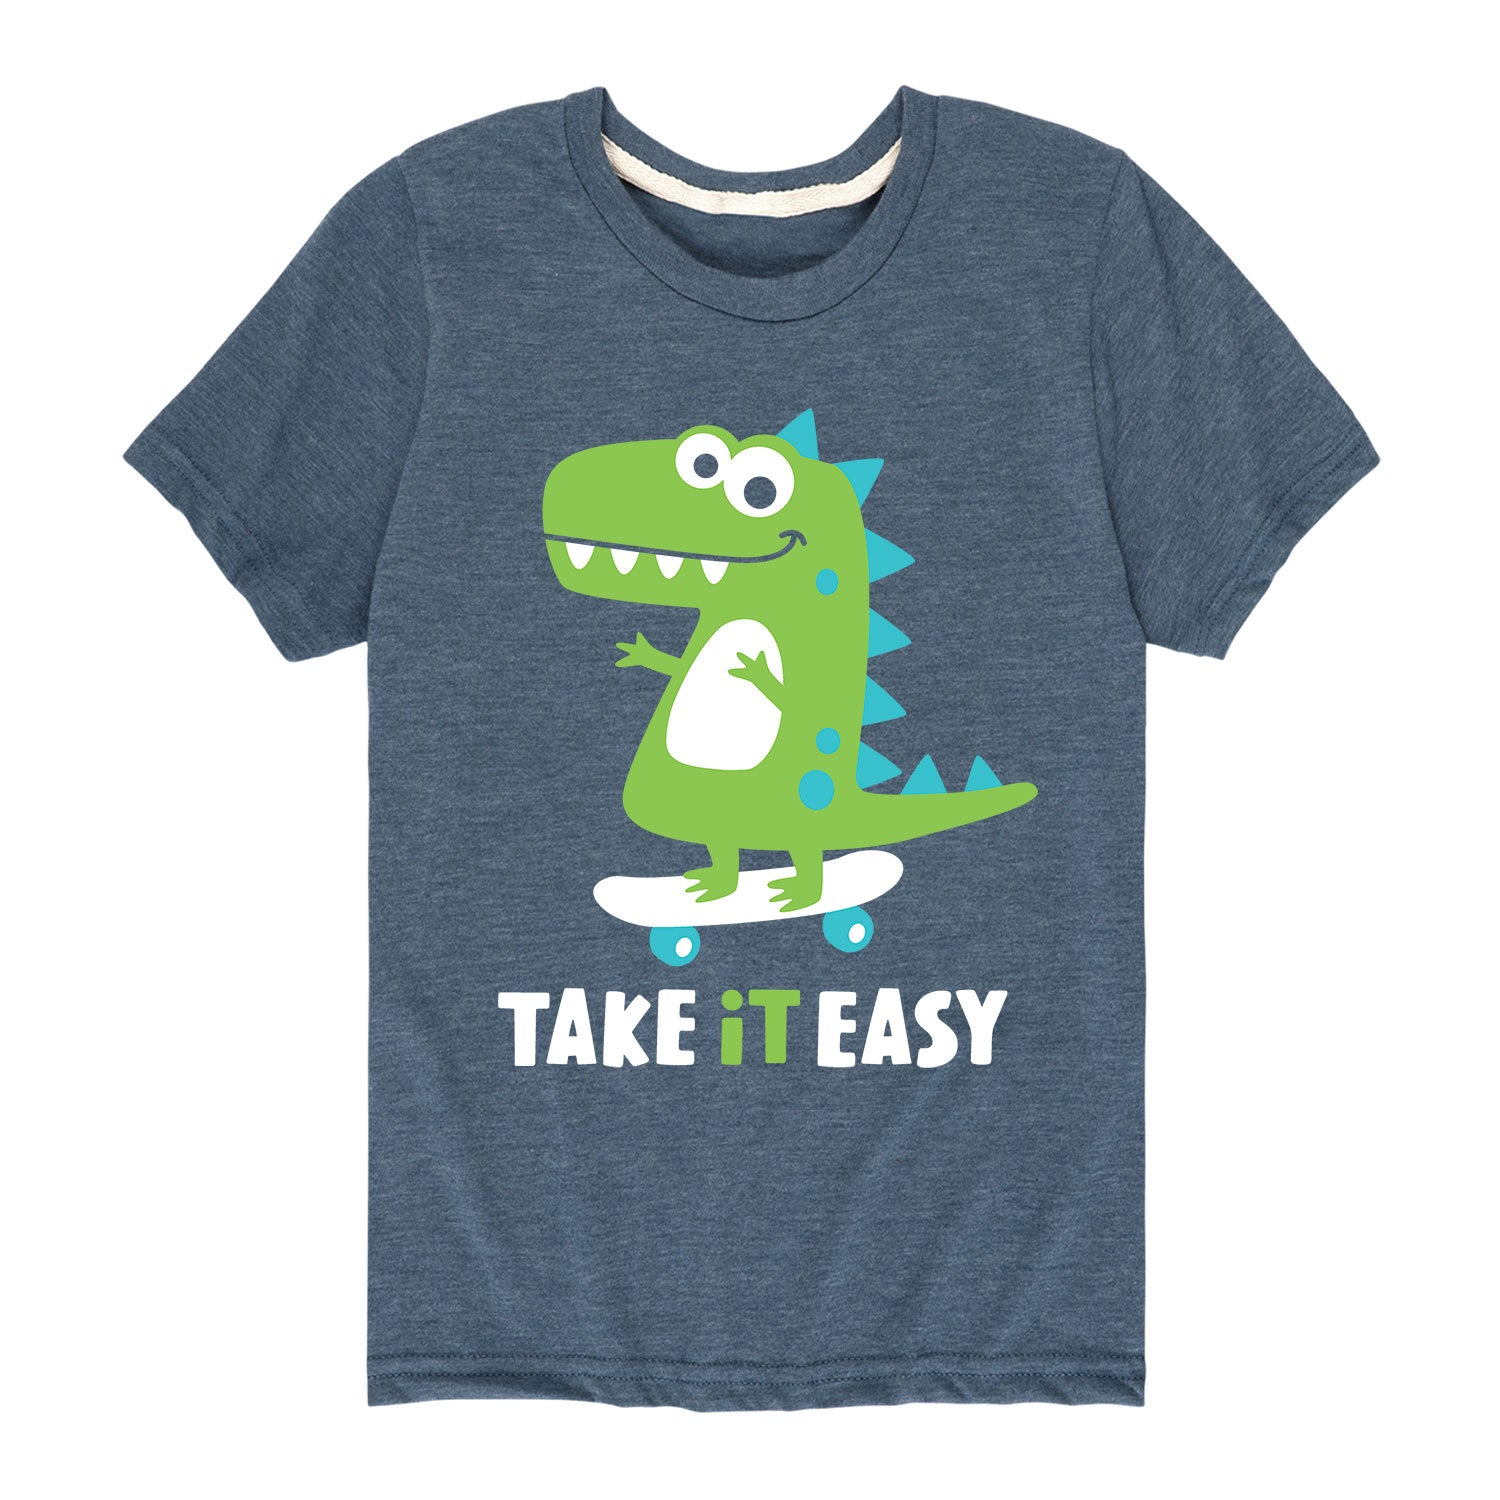 Take It Easy - Youth & Toddler Short Sleeve T-Shirt